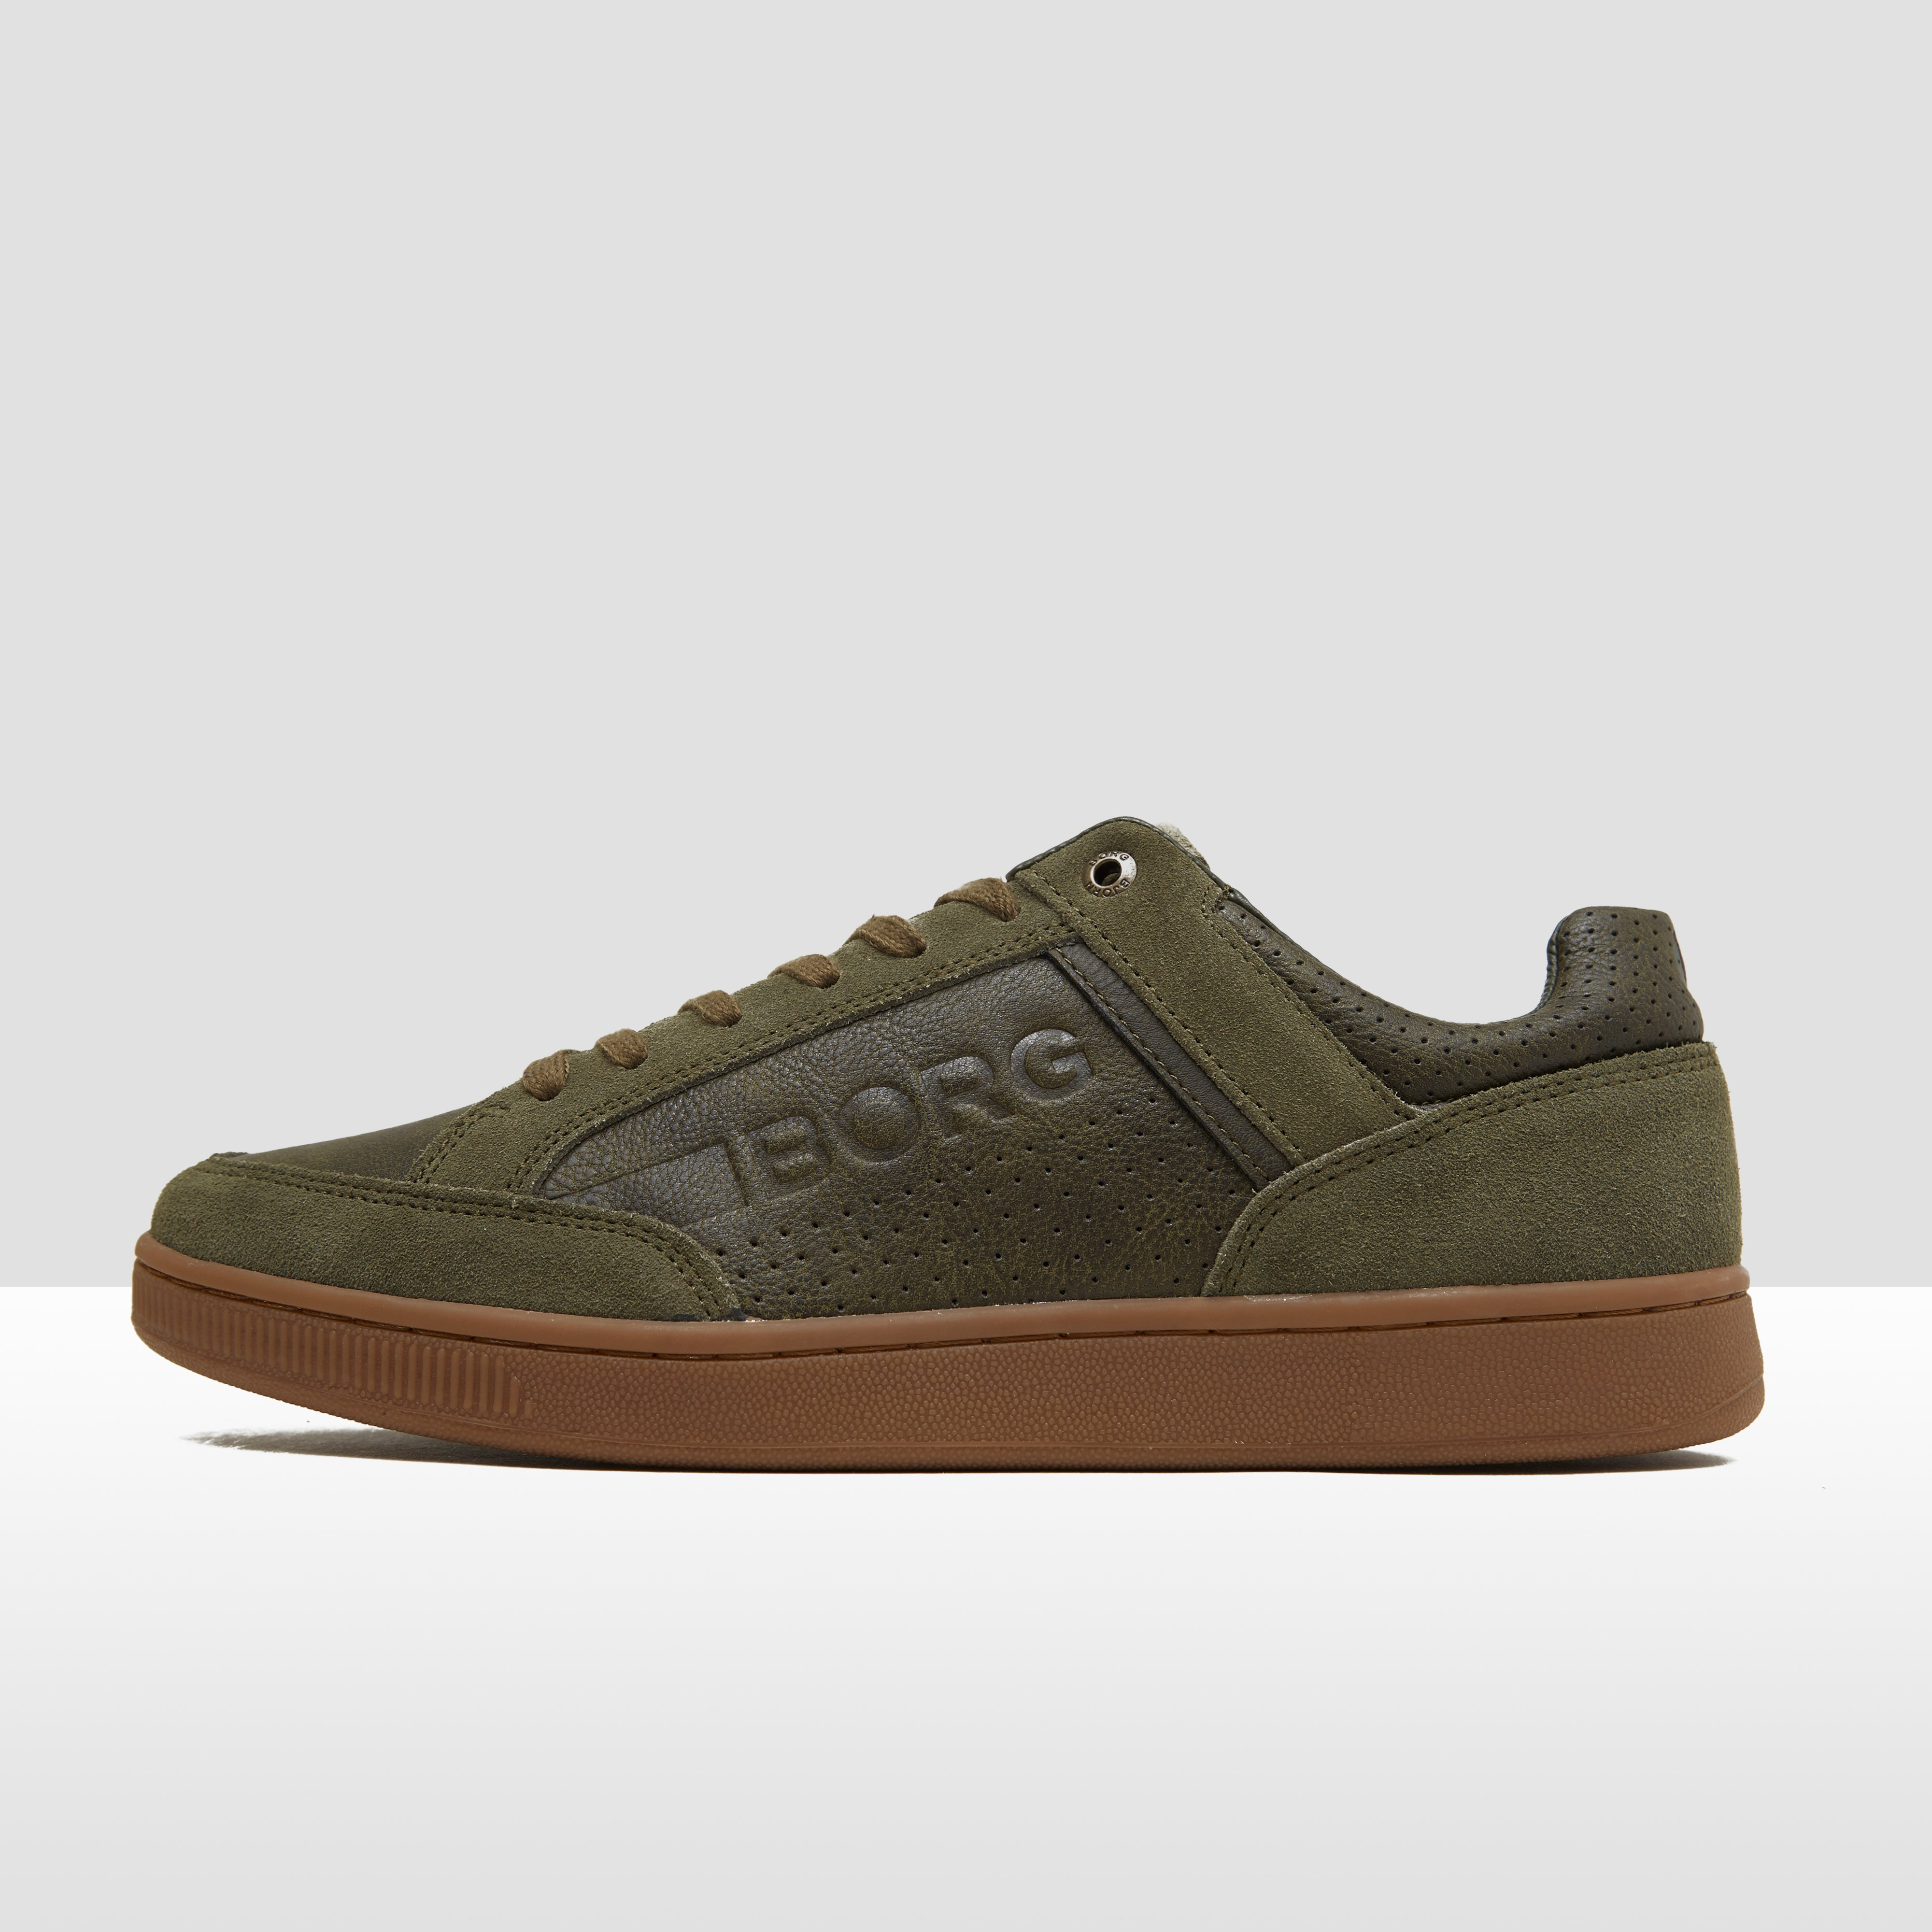 Chaussures Björn Borg Avec Les Hommes Lacer h0AebjeBA